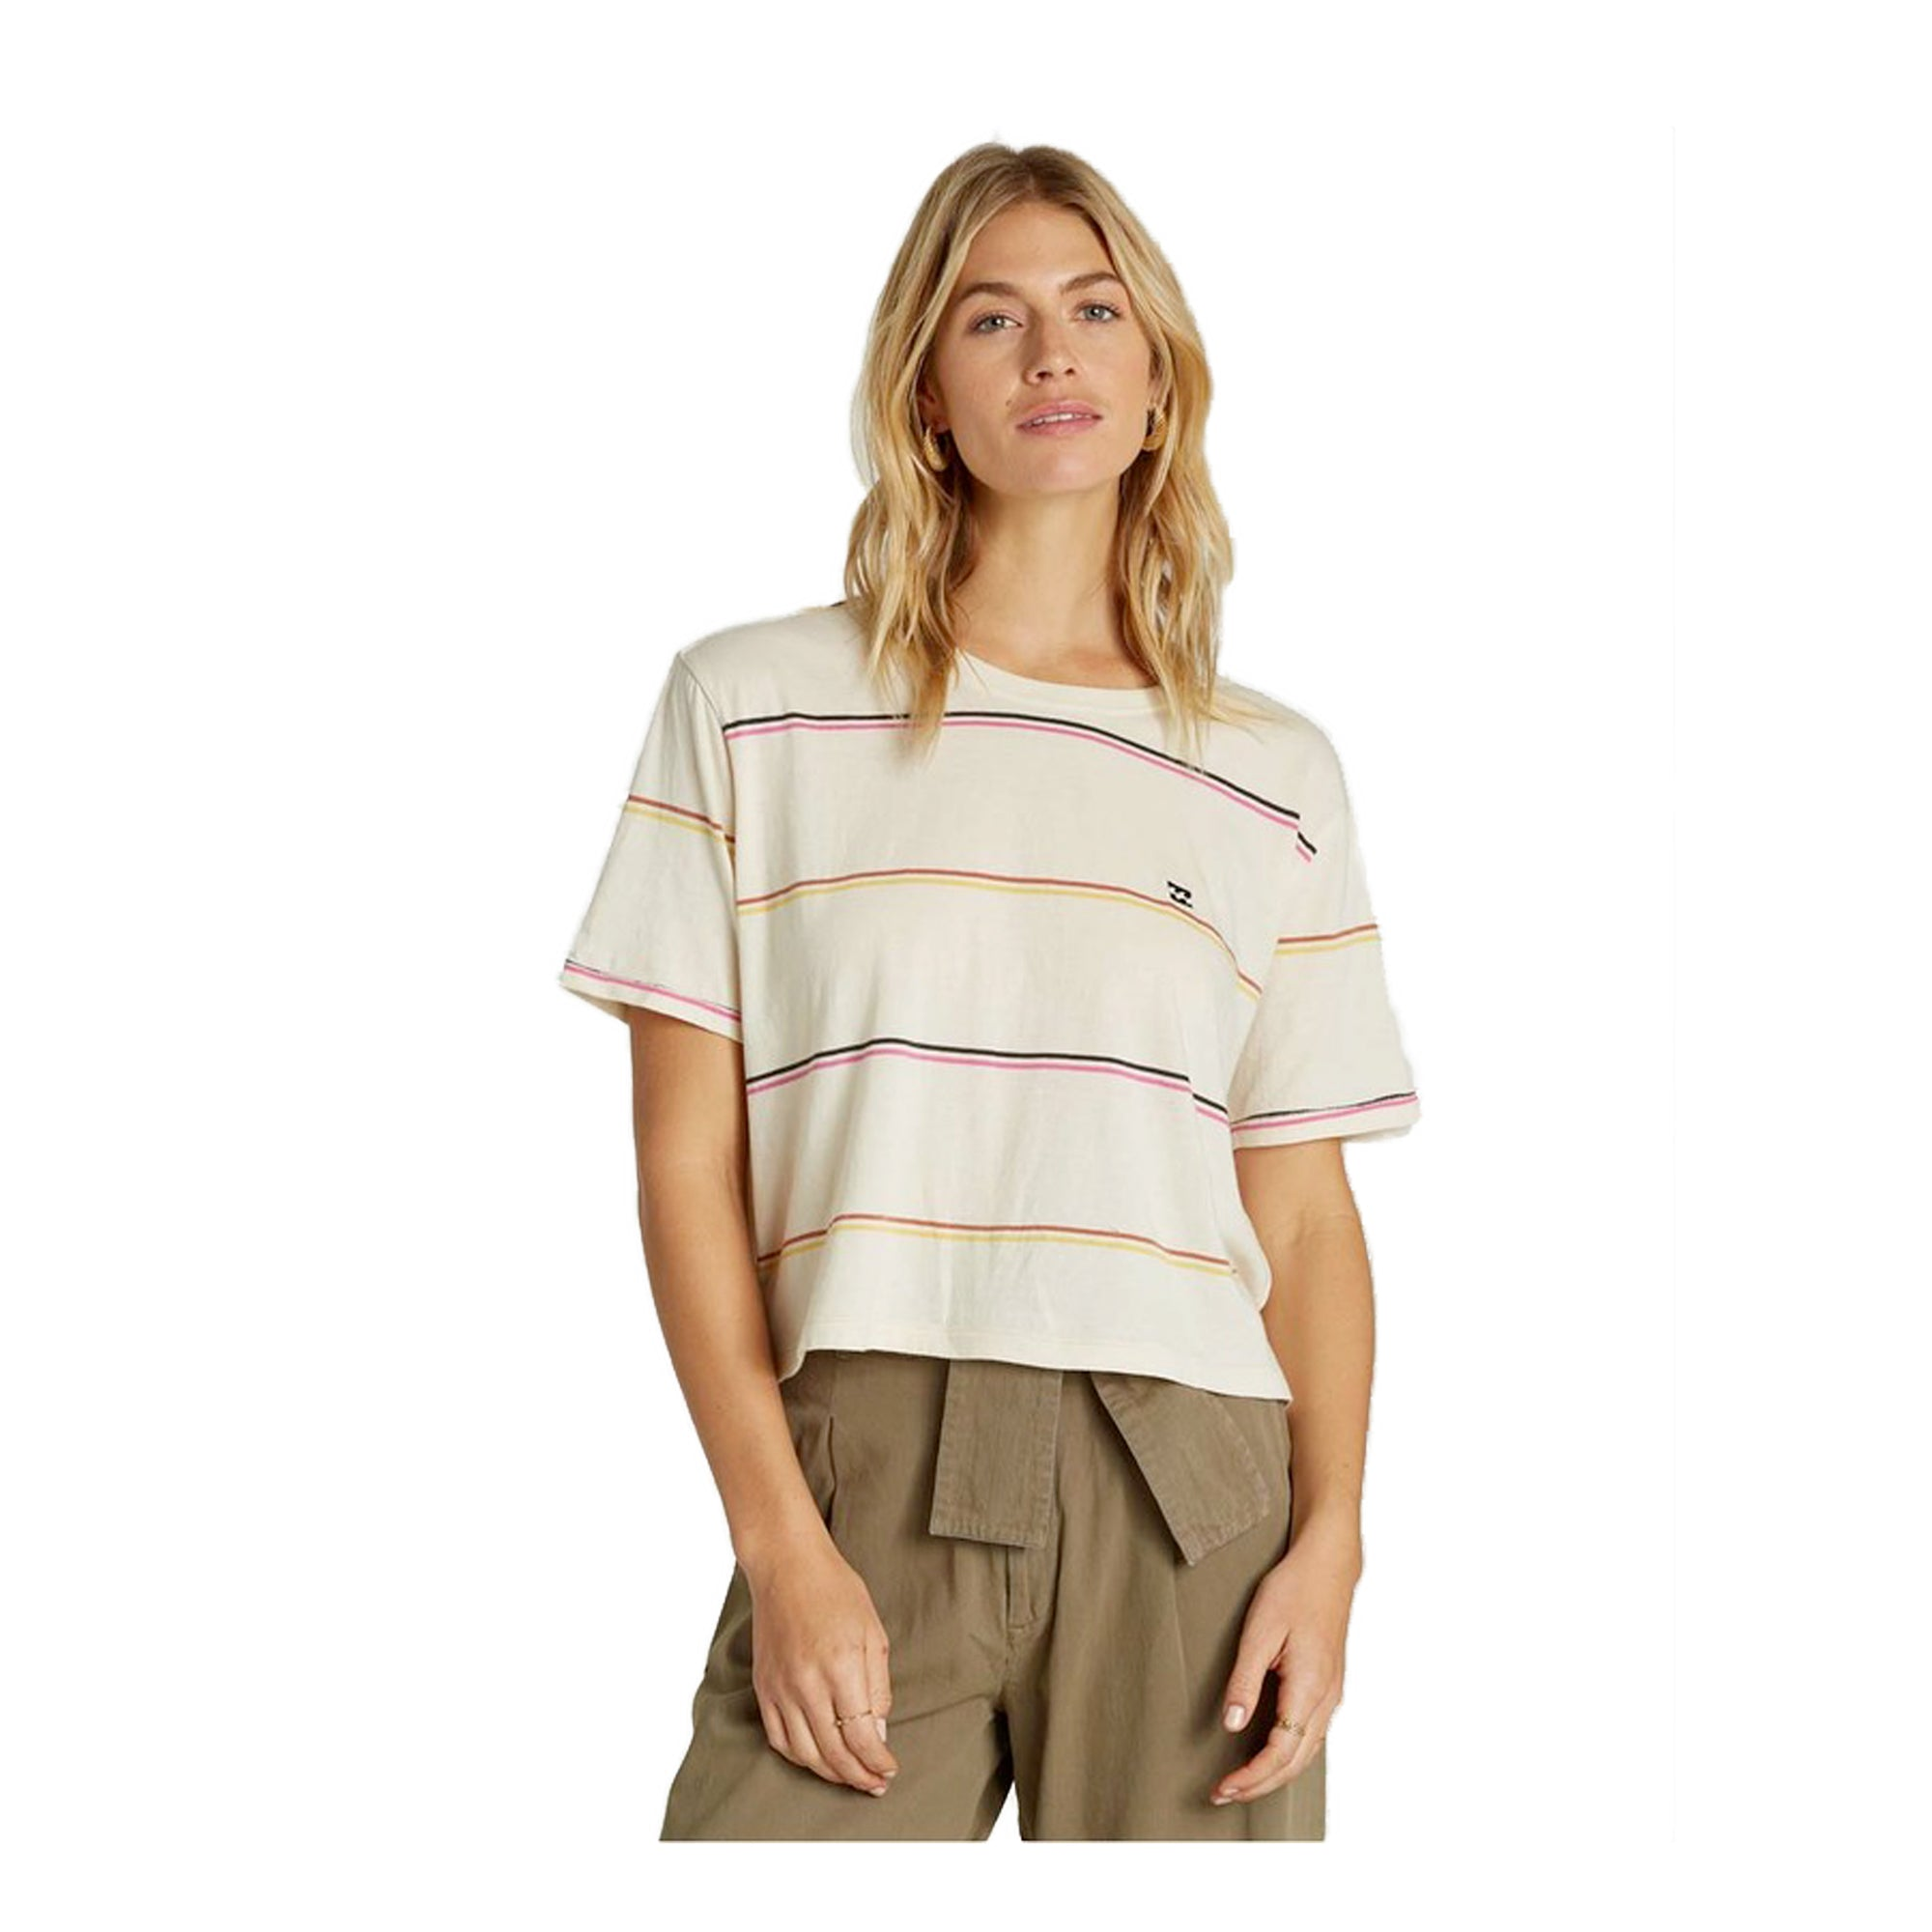 Billabong Soul Babe 2 Women's S/S T-shirt